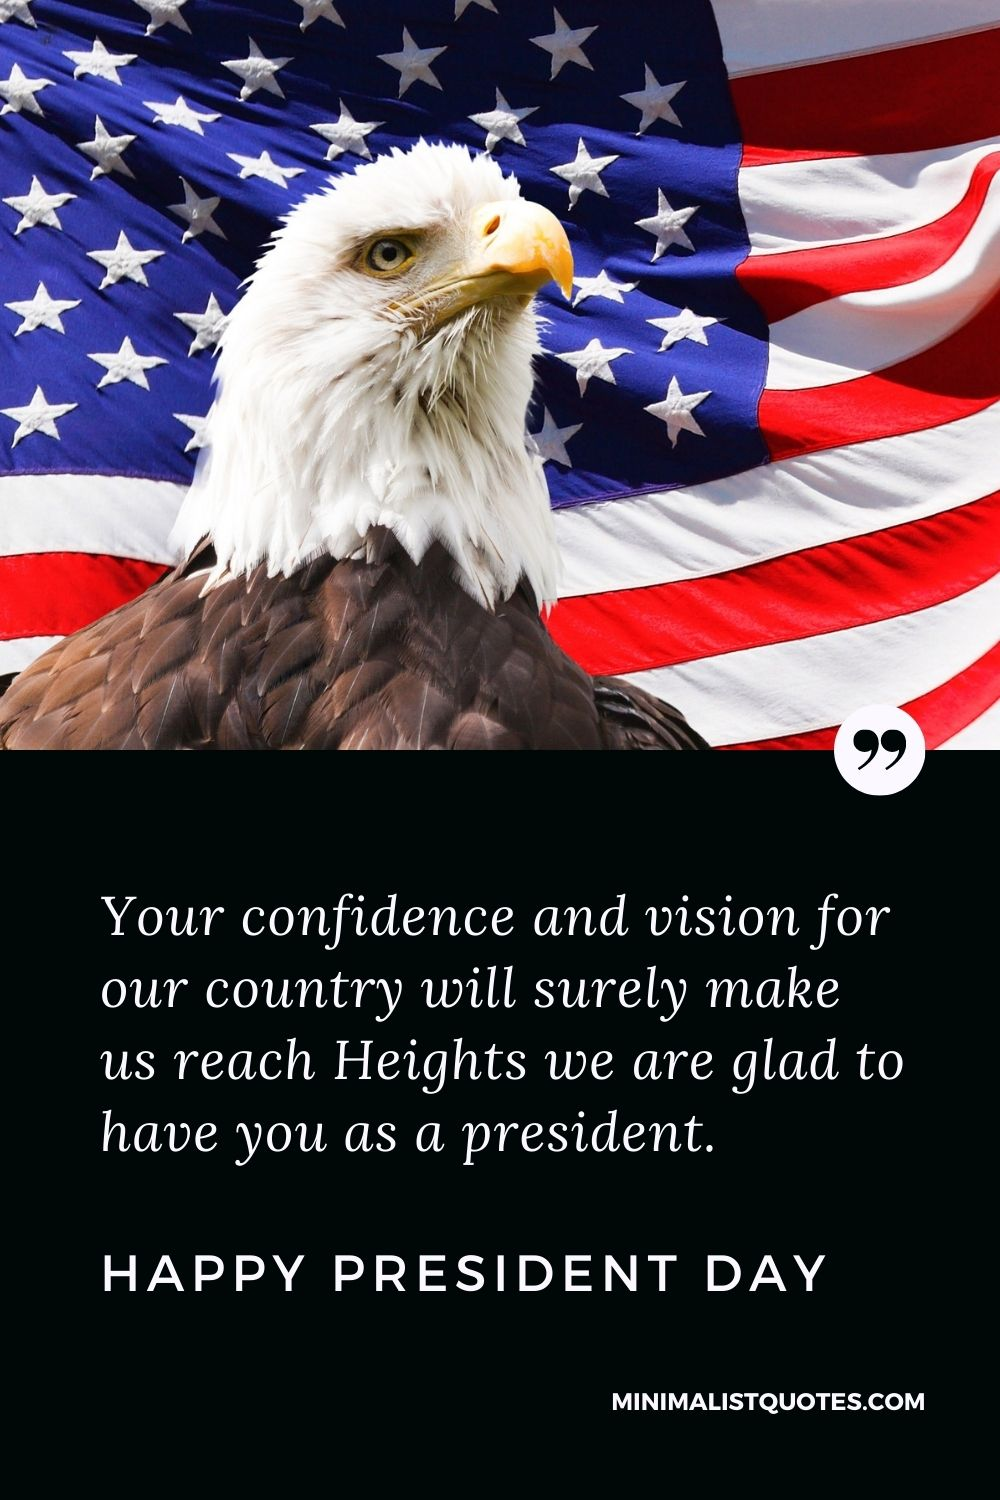 President Day Quote, Wish & Message With Image: Your confidence and vision for our country will surely make us reach Heights we are glad to have you as a president. Happy President Day!